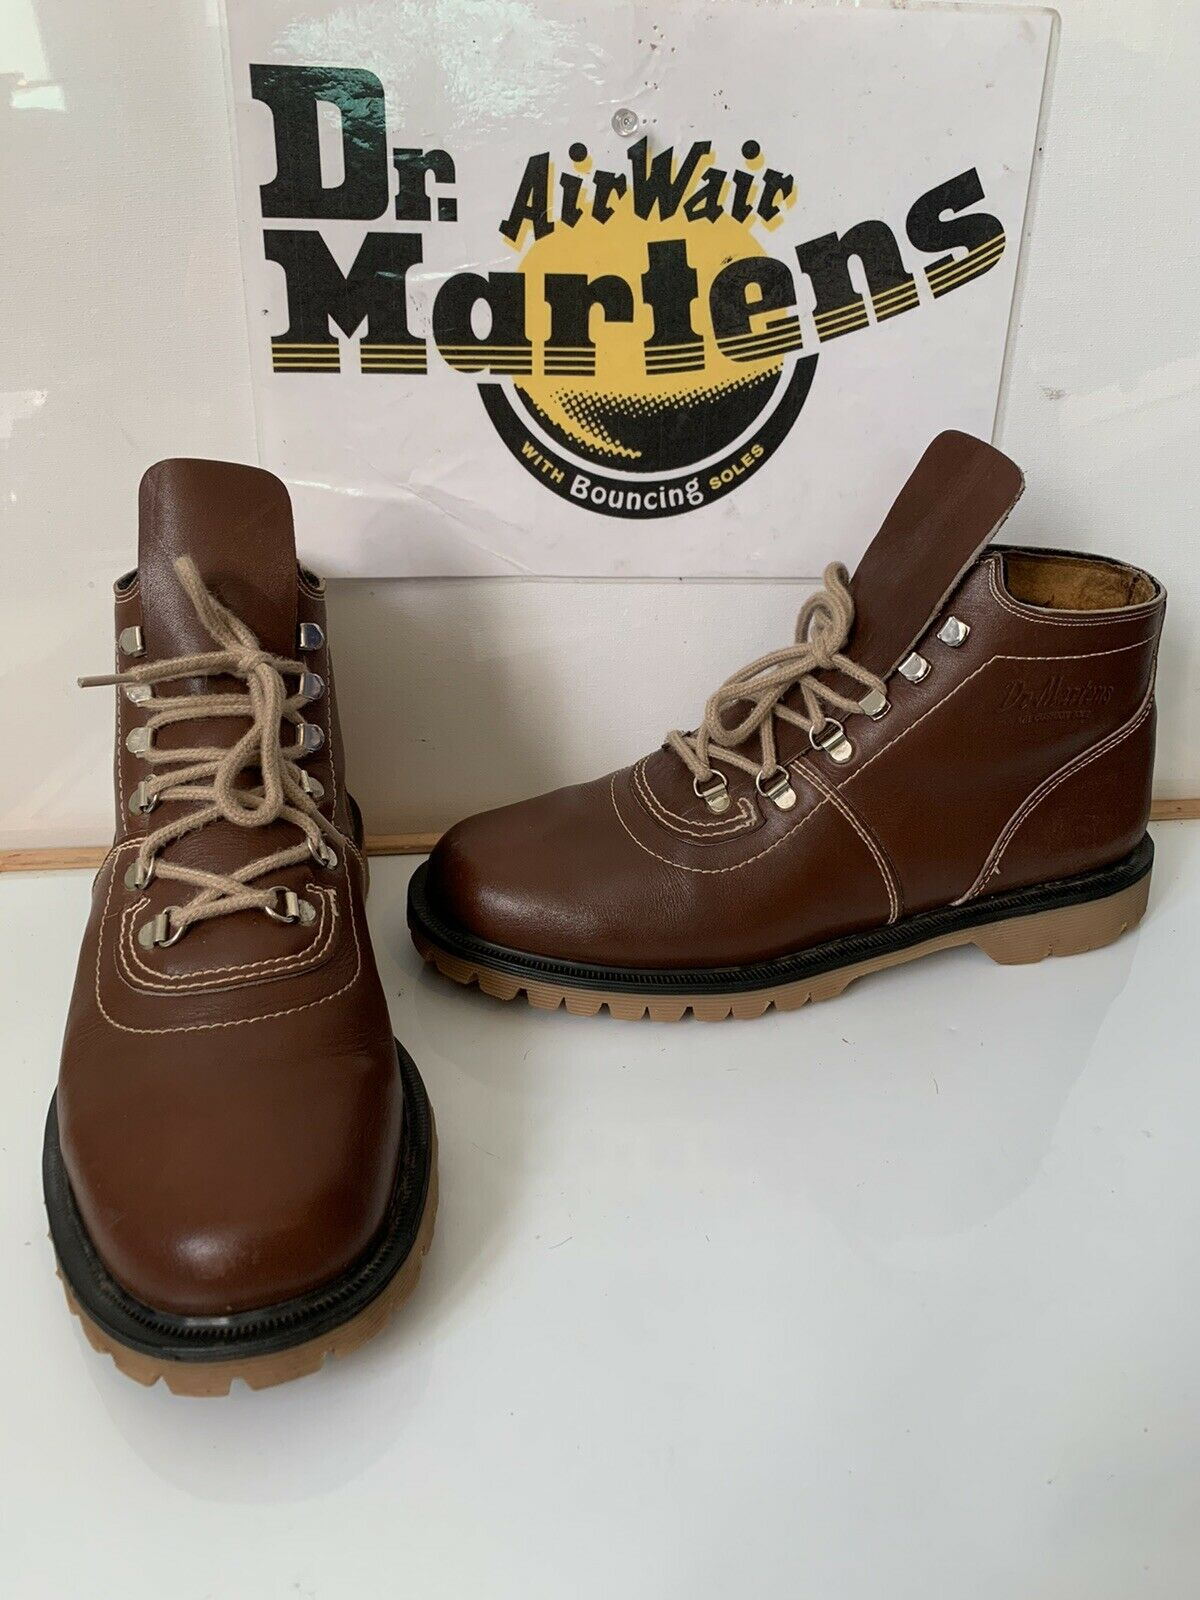 Dr. Martens Vintage Leather Boots Size UK 8 EU 42 Made in England